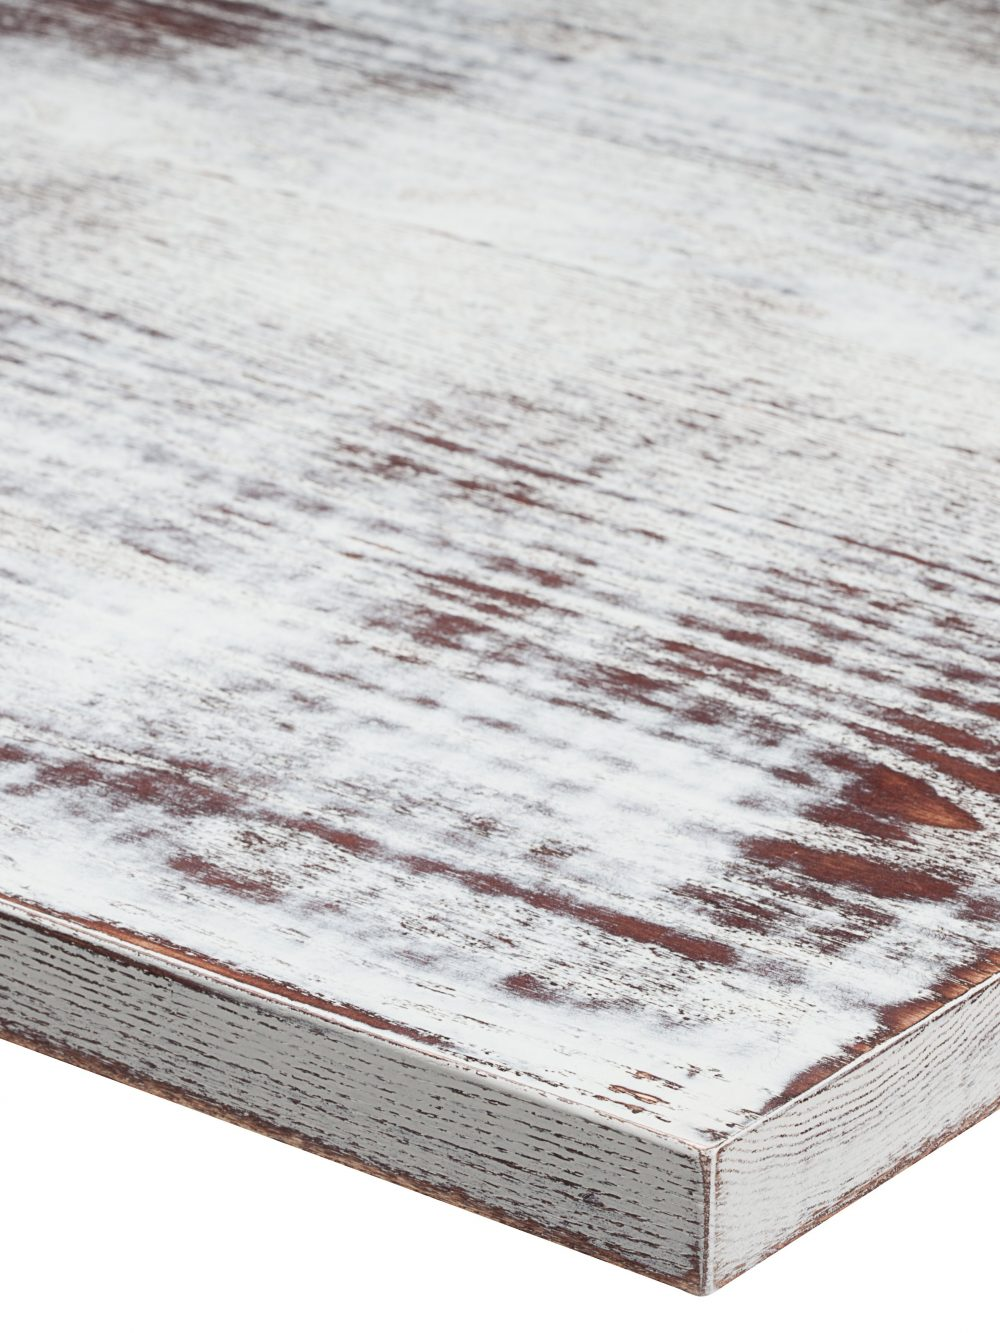 Distressed Walnut Pure White RAL 9010